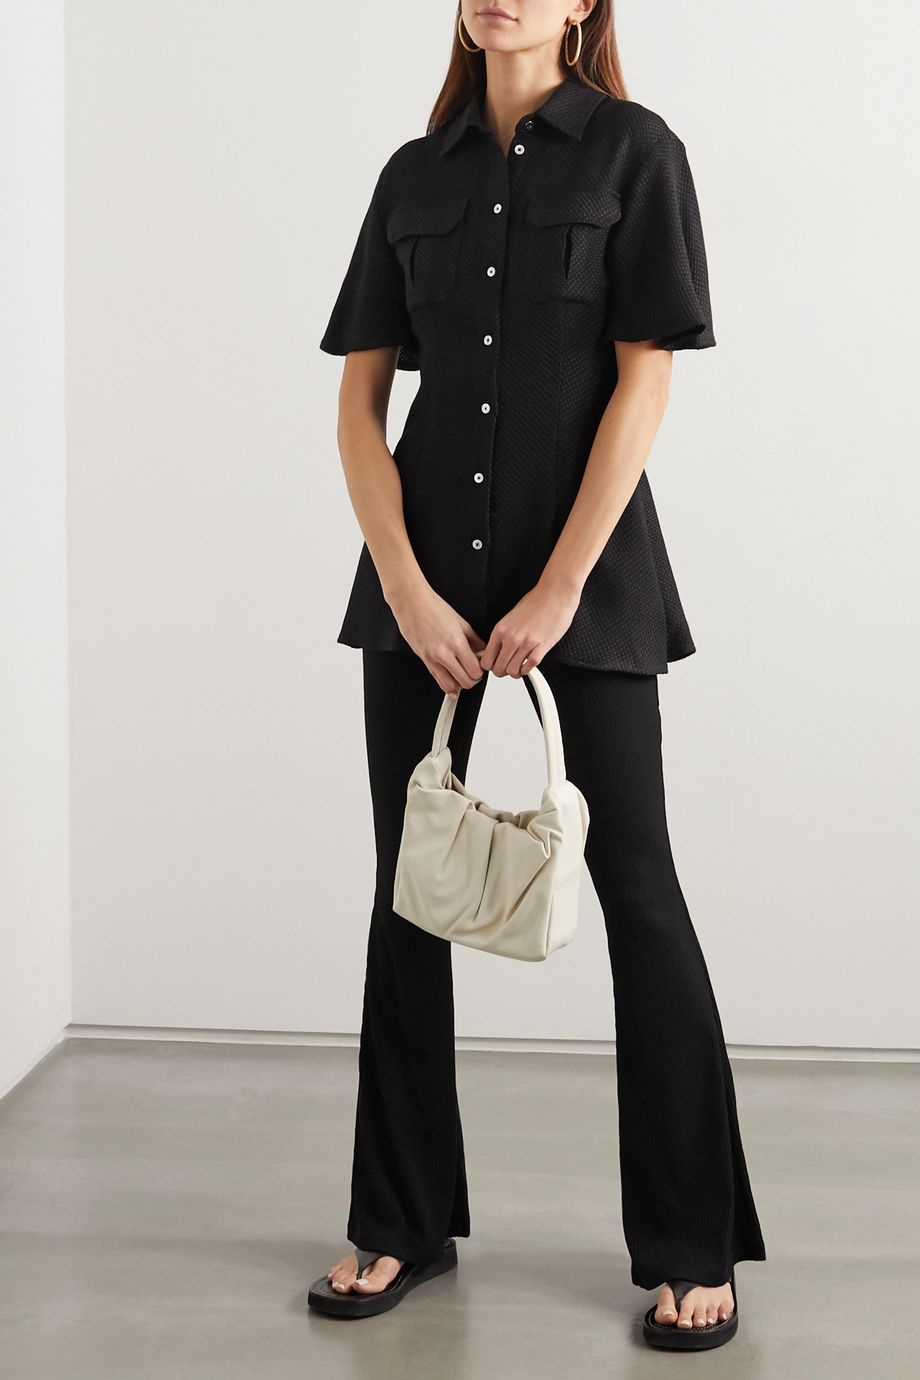 Maggie Marilyn Lead The Charge brushed cotton-blend tweed shirt